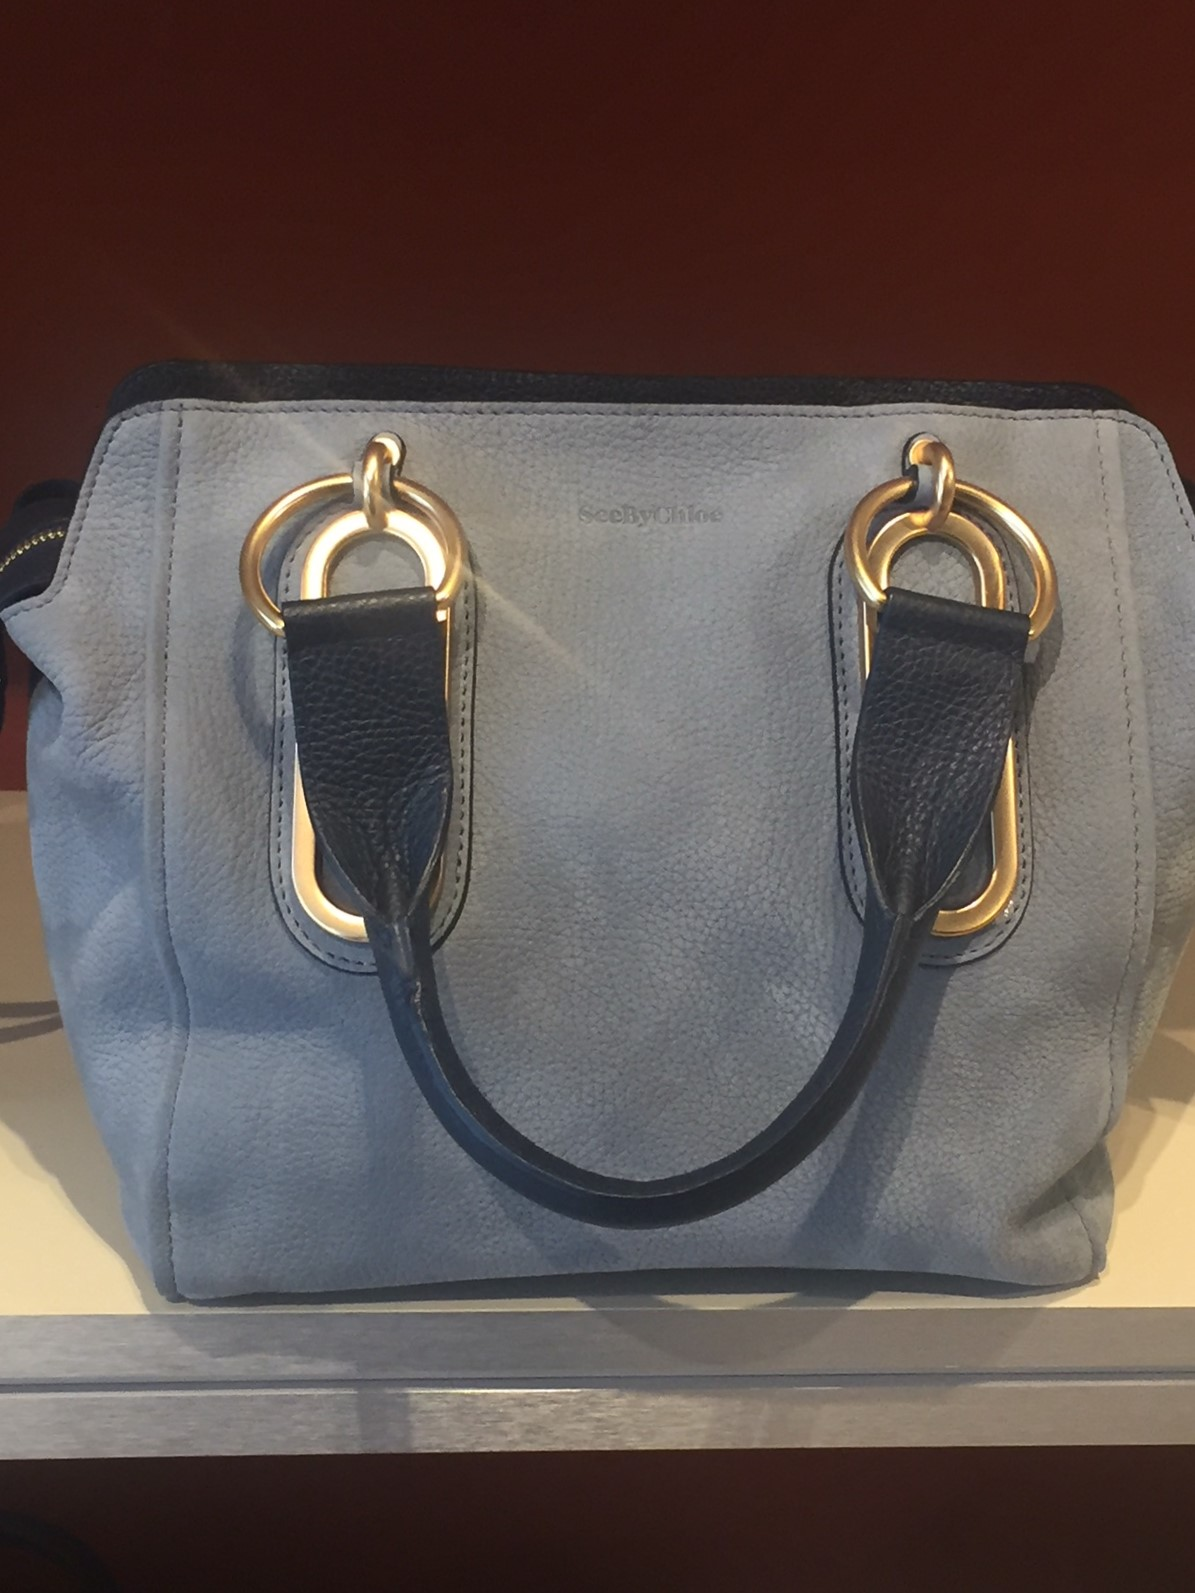 3 tips on shopping for a bag at Bicester Village